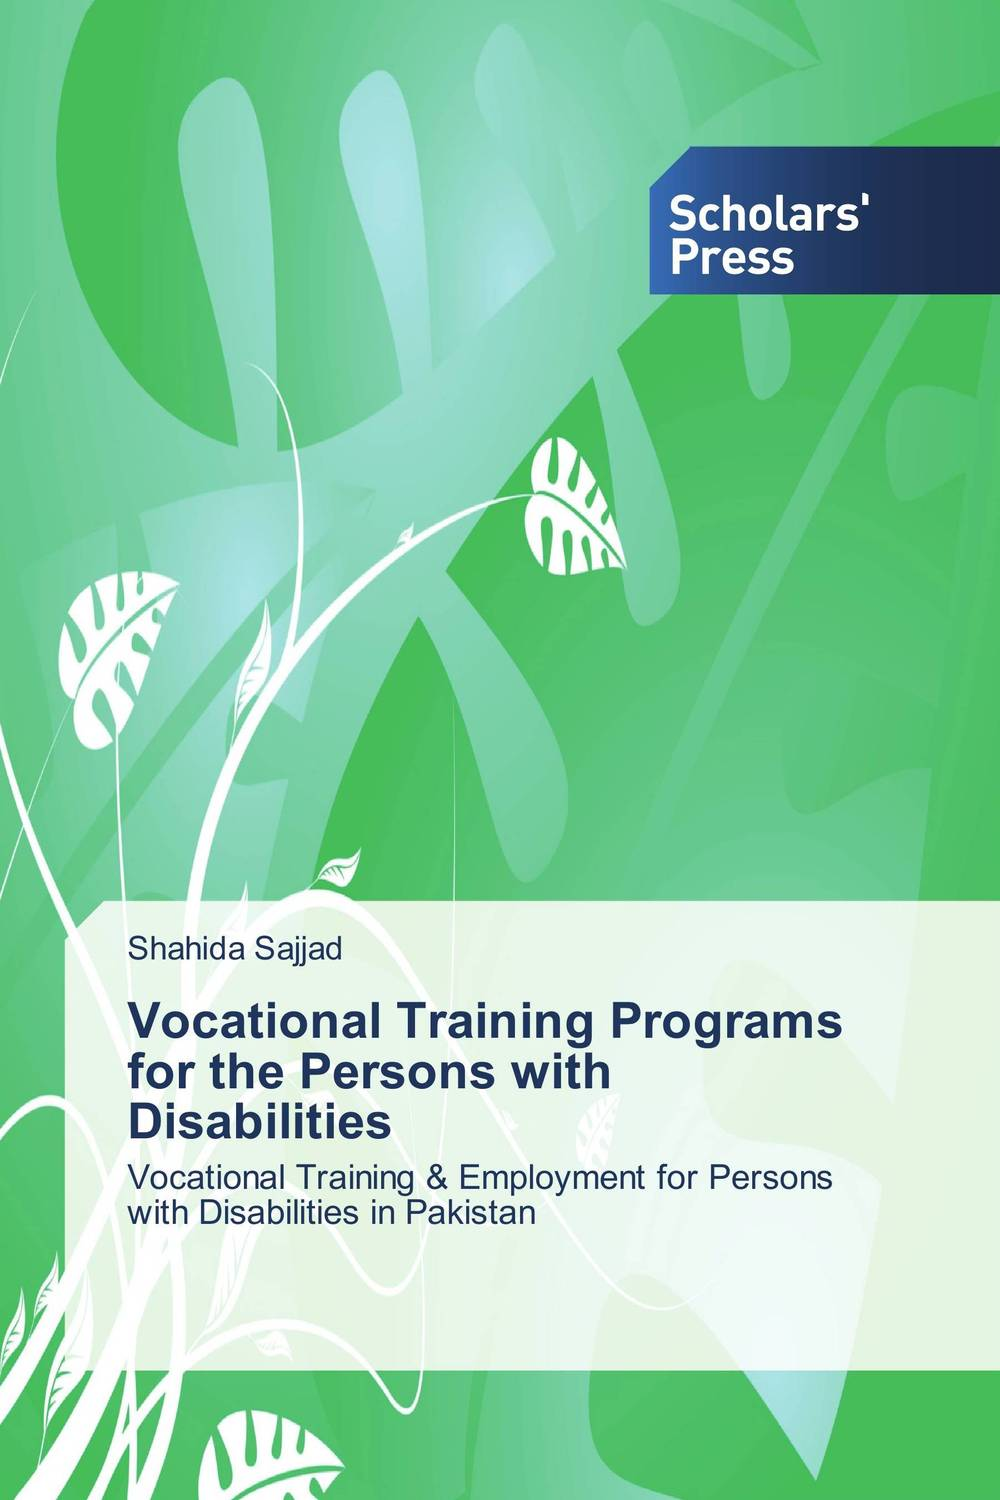 Vocational Training Programs for the Persons with Disabilities